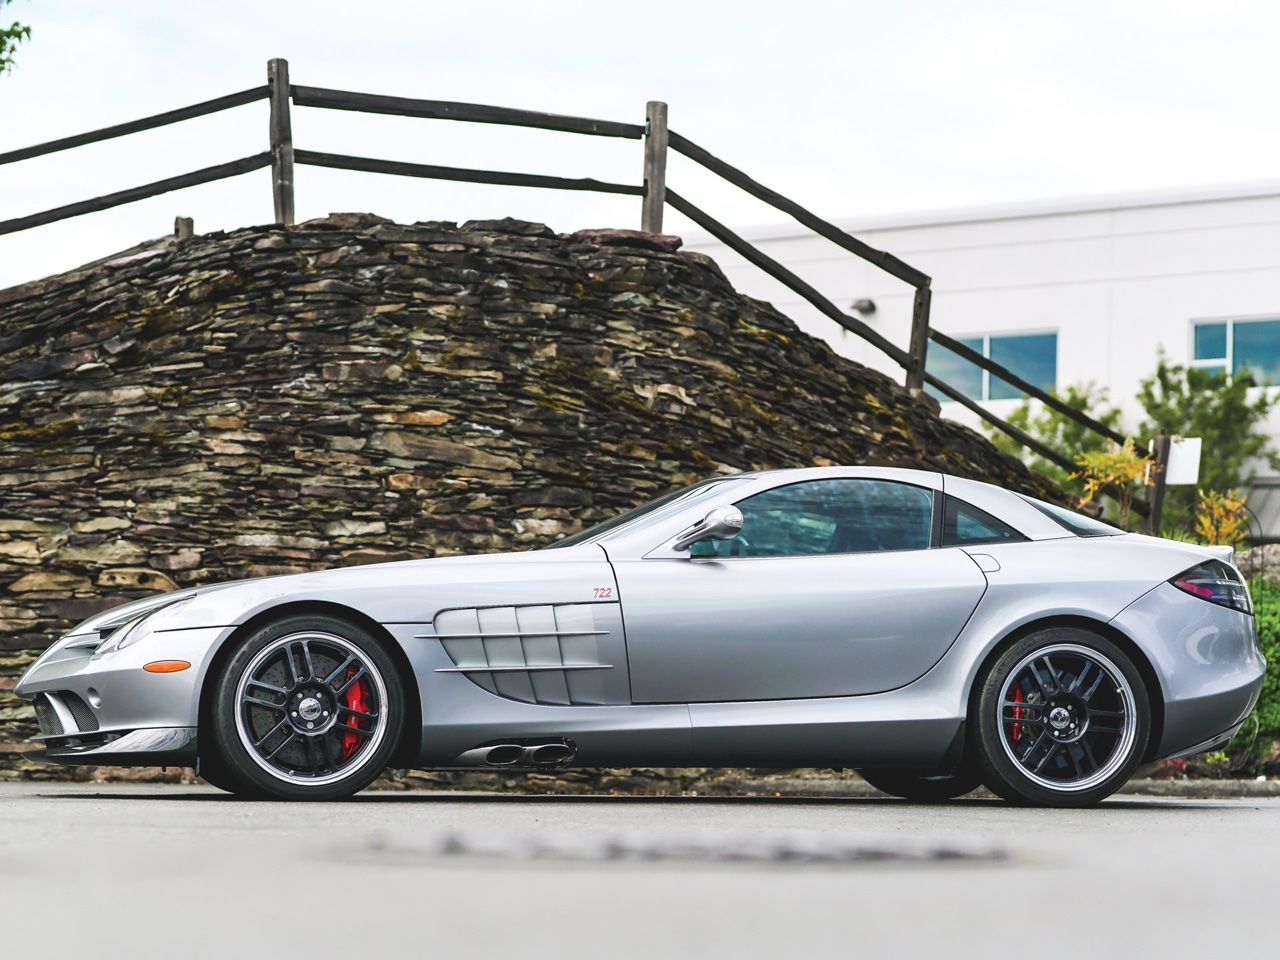 Mercedes SLR McLaren Stirling Moss - Bouquet final ! 10